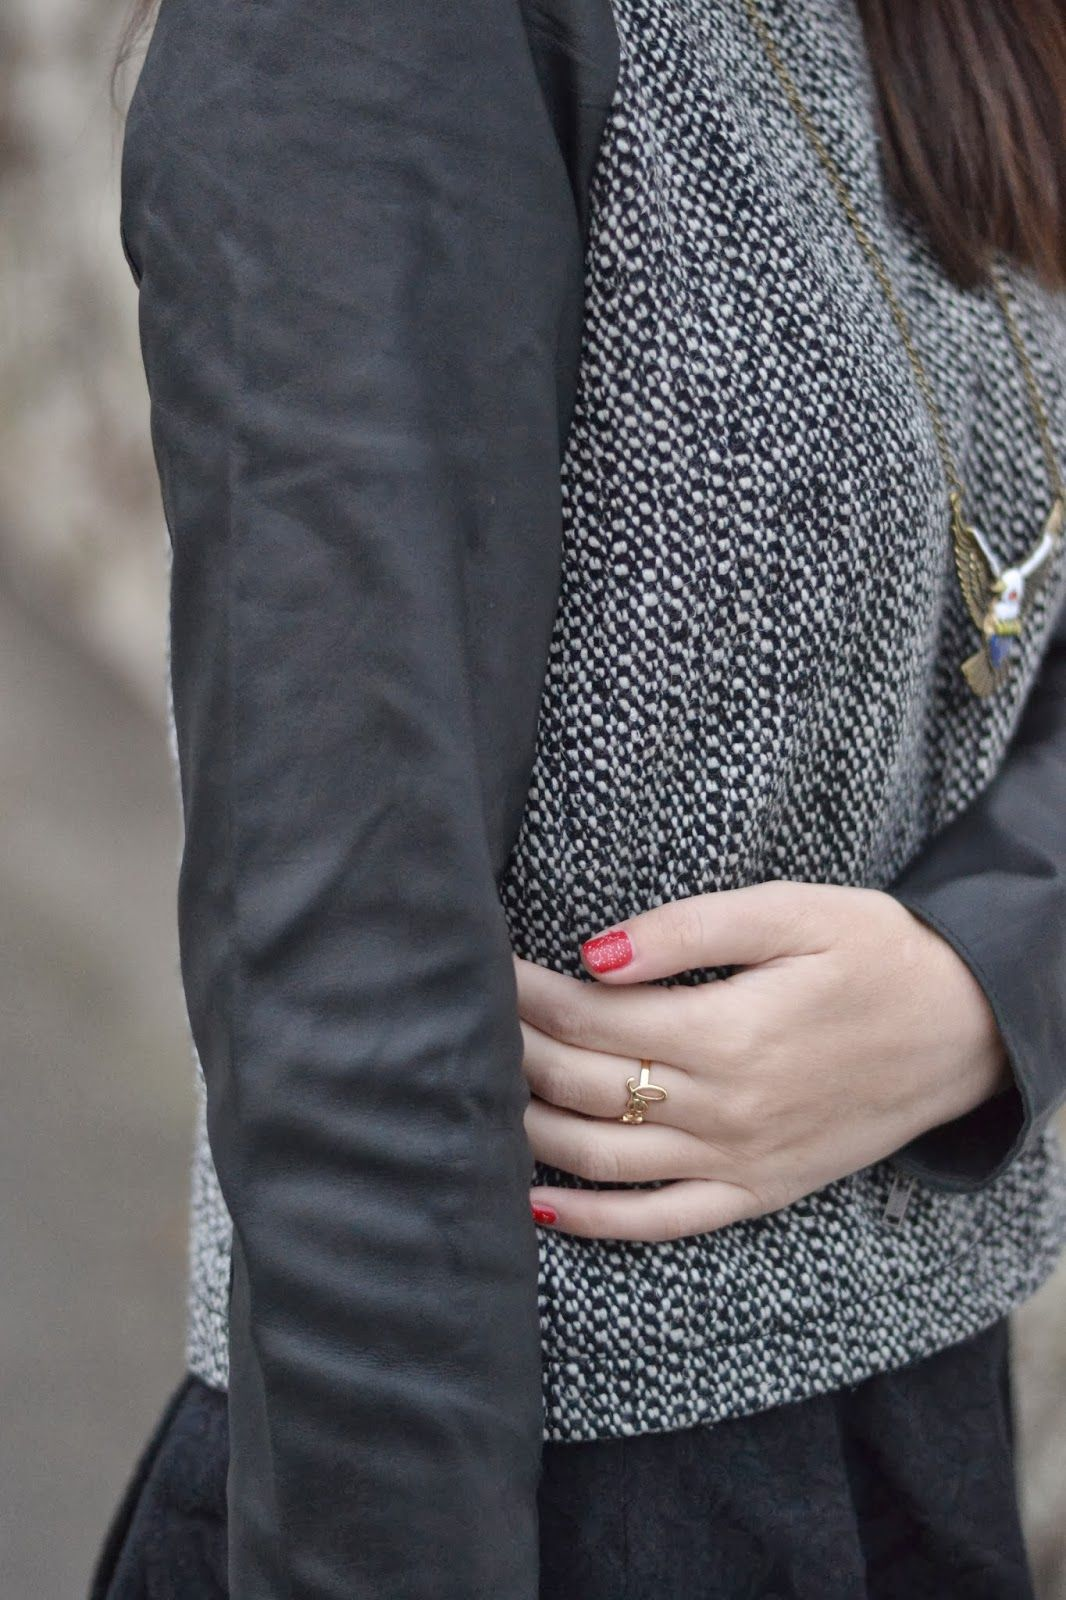 Leather sleeves